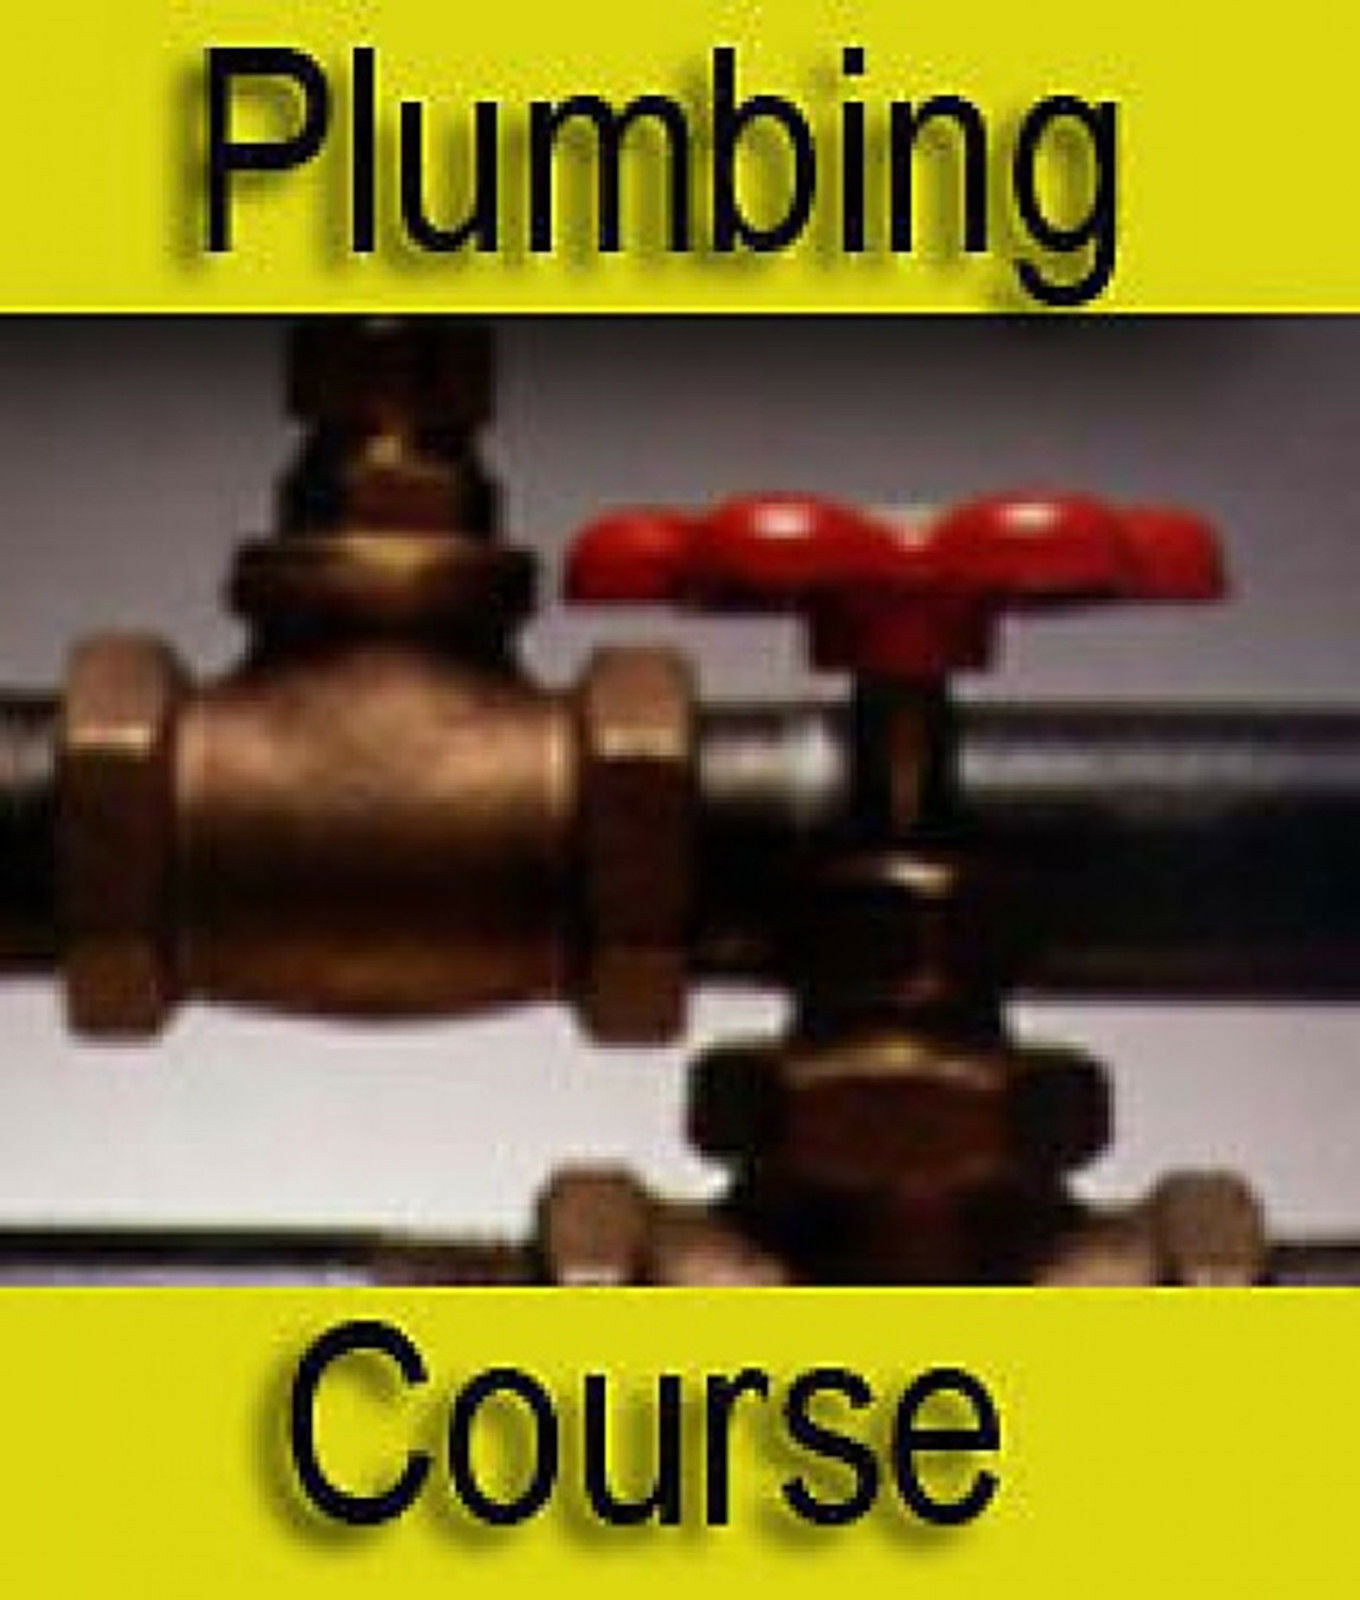 Plumbing plumbers training course pipefitting diy book picclick uk - How to run plumbing collection ...